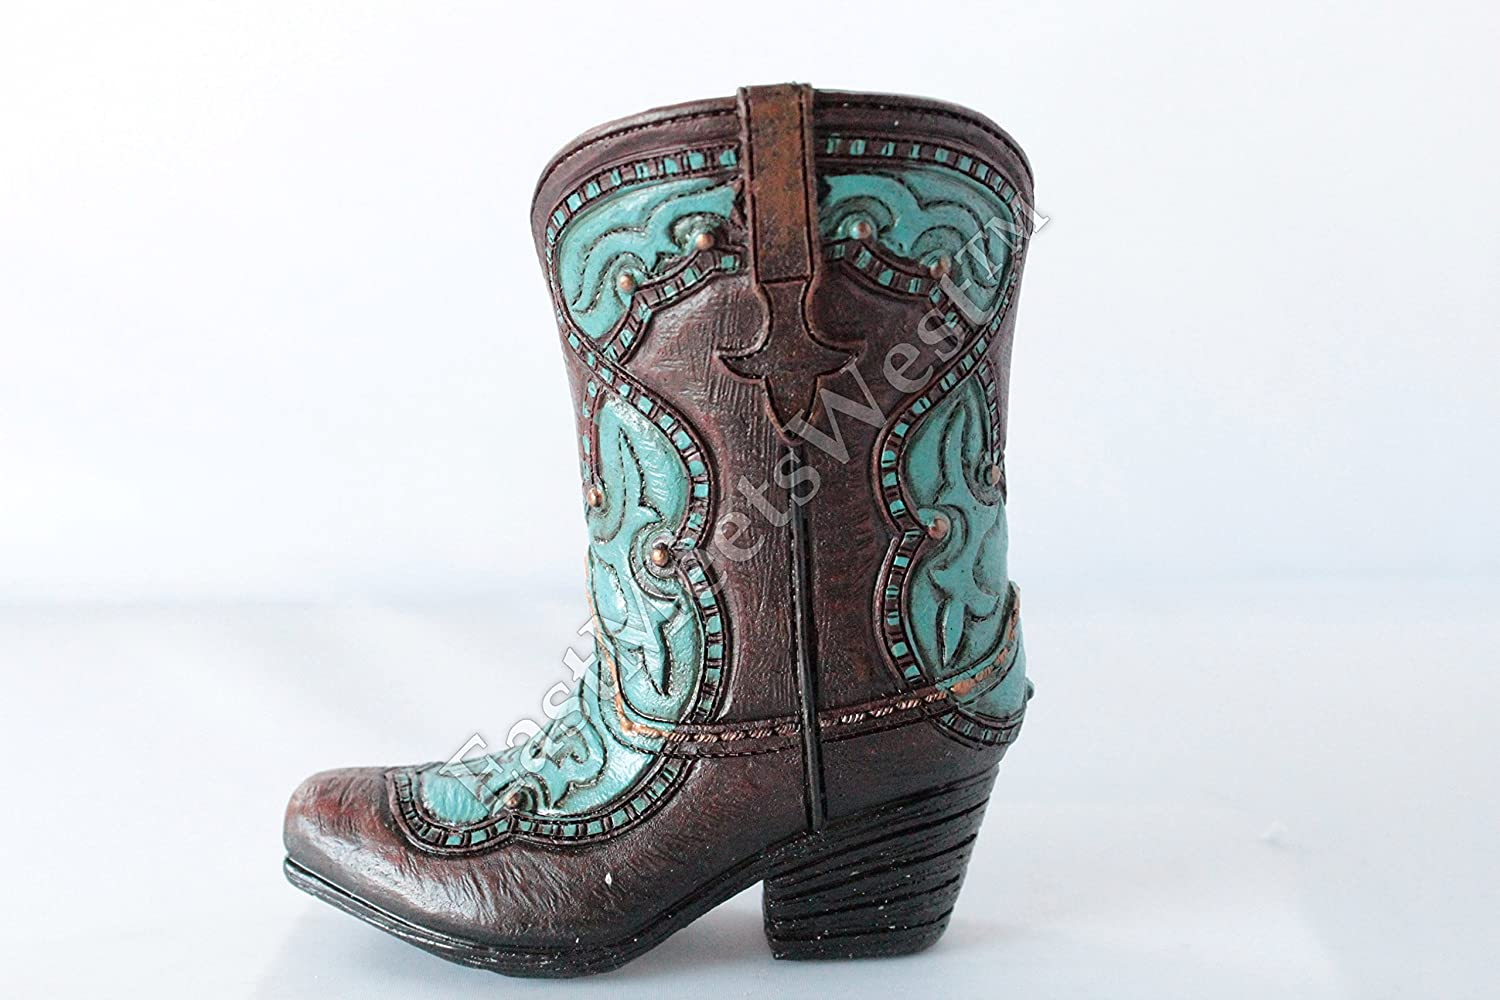 Small Western All Challenge the lowest price of Japan stores are sold Cowboy Cowgirl Rustic Boot Vase Turquoise Flowers